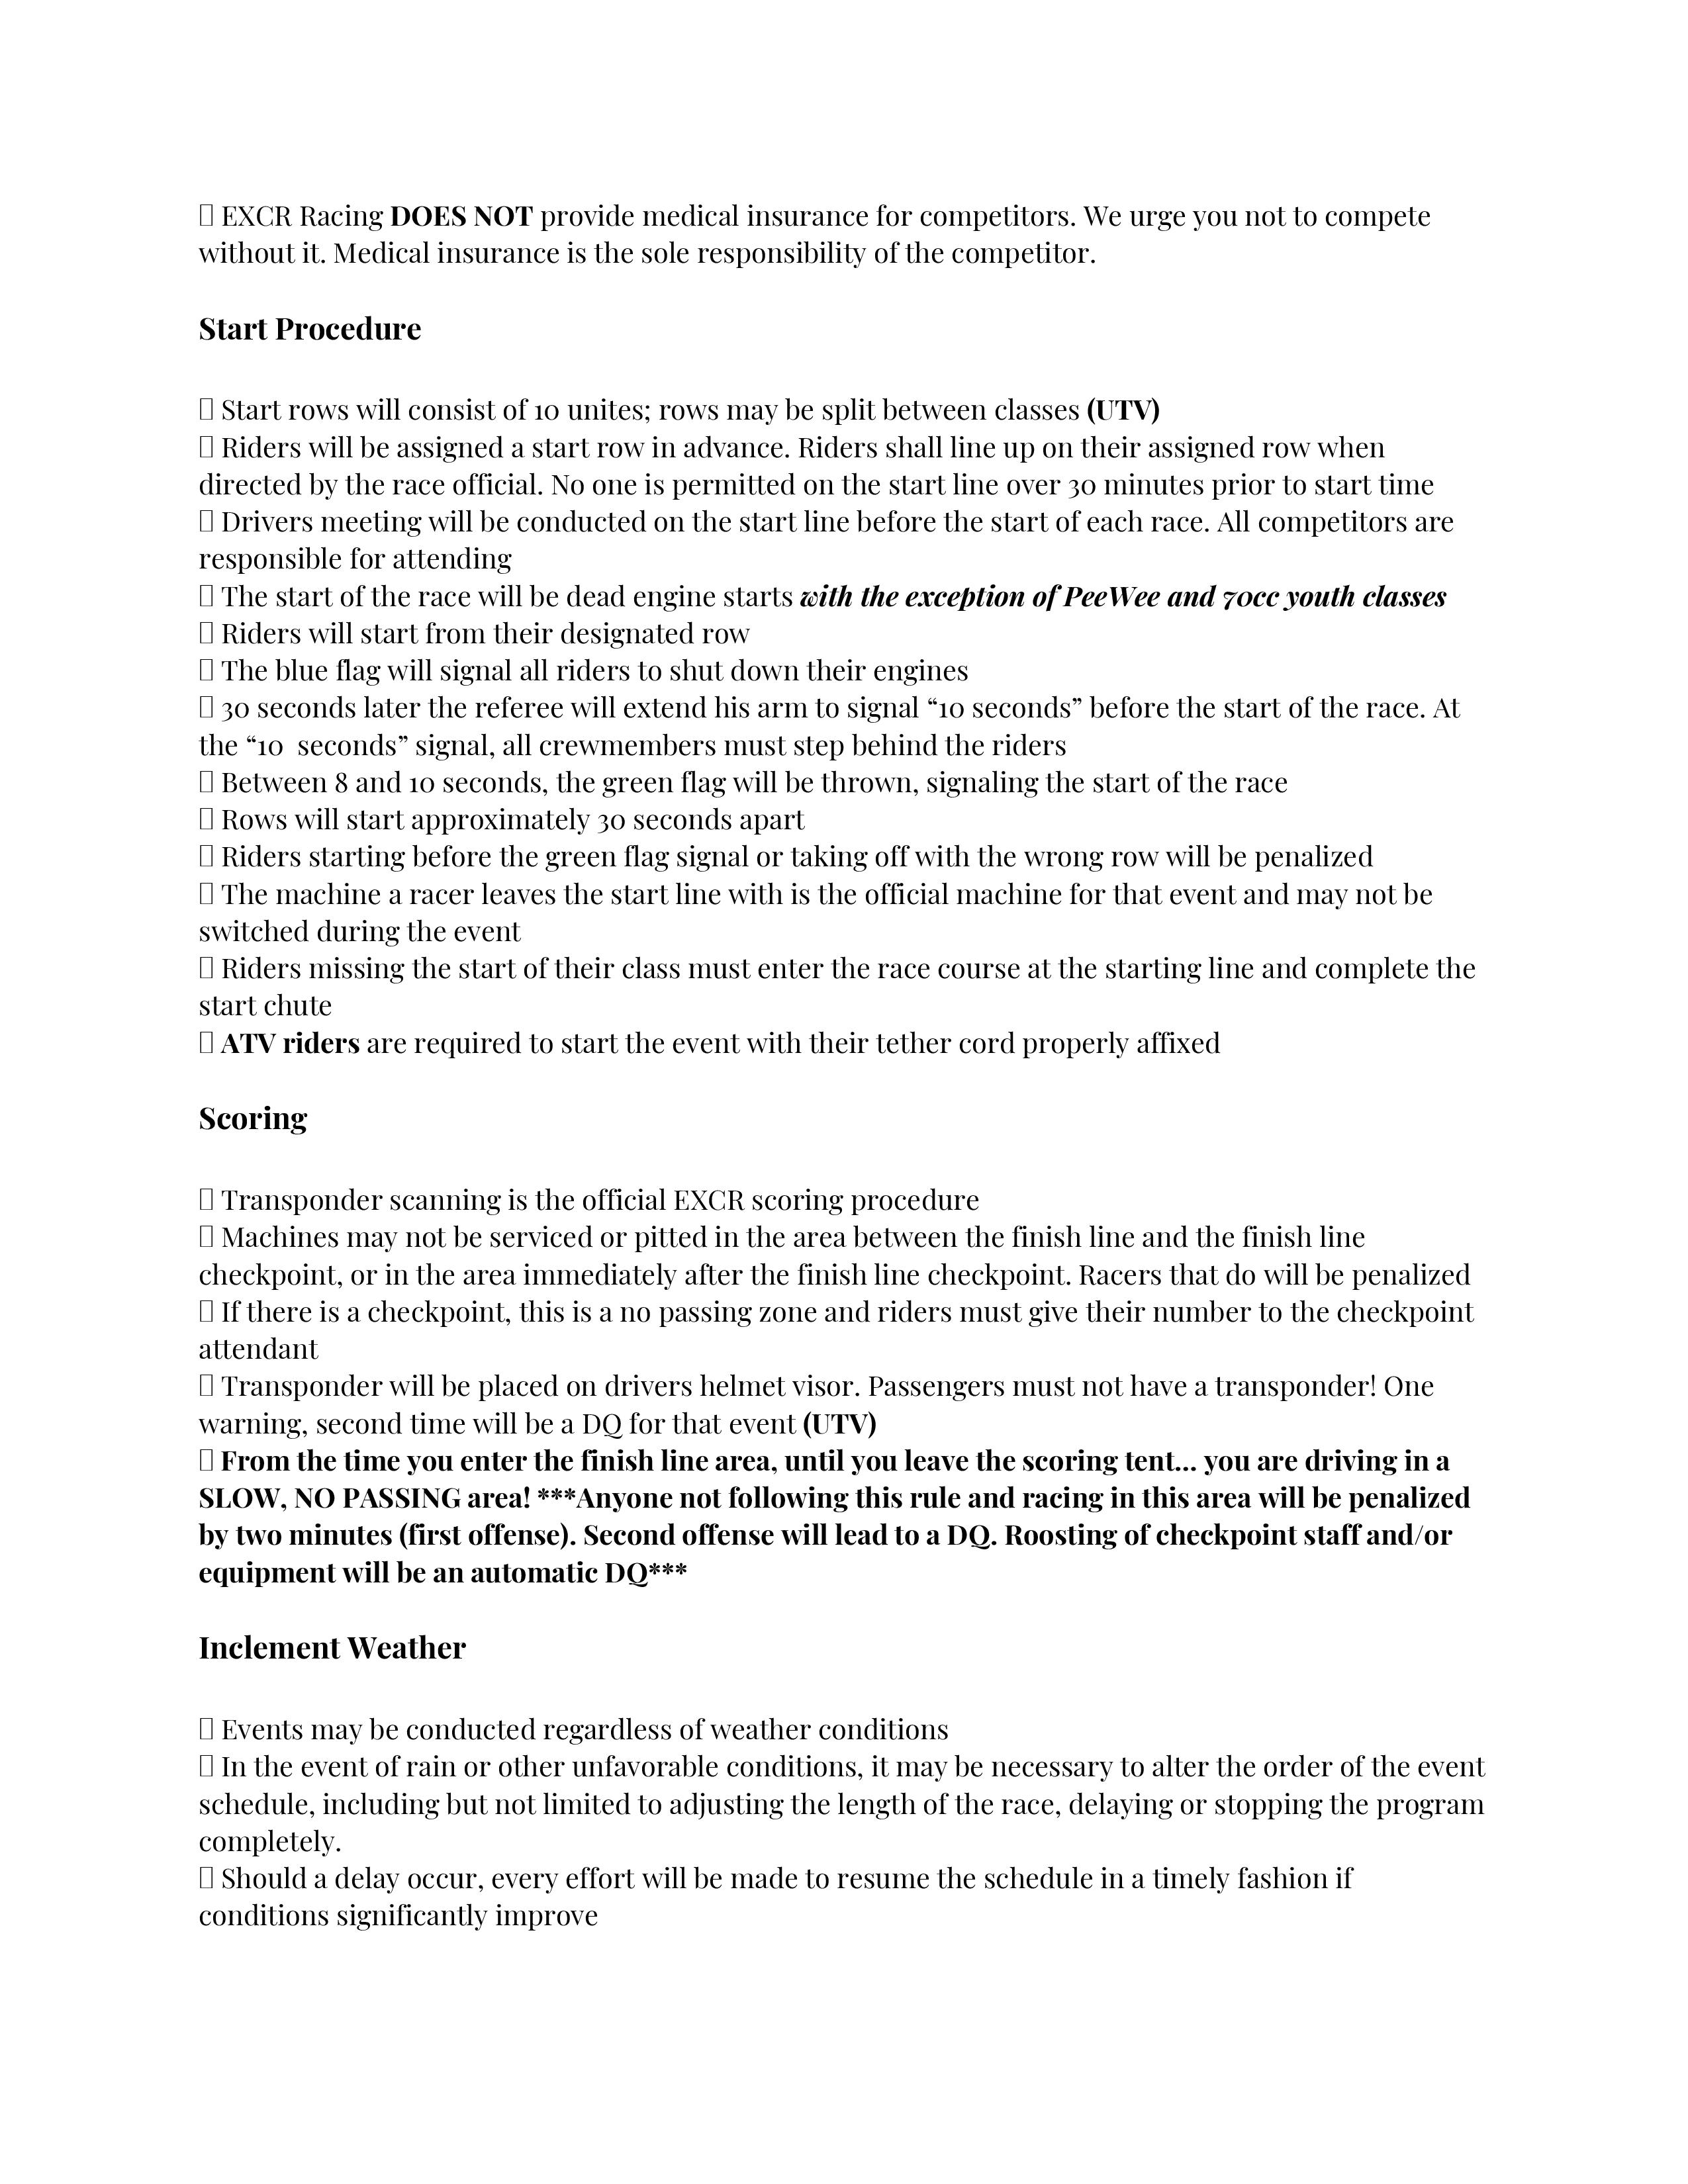 Complete Rules-page-010